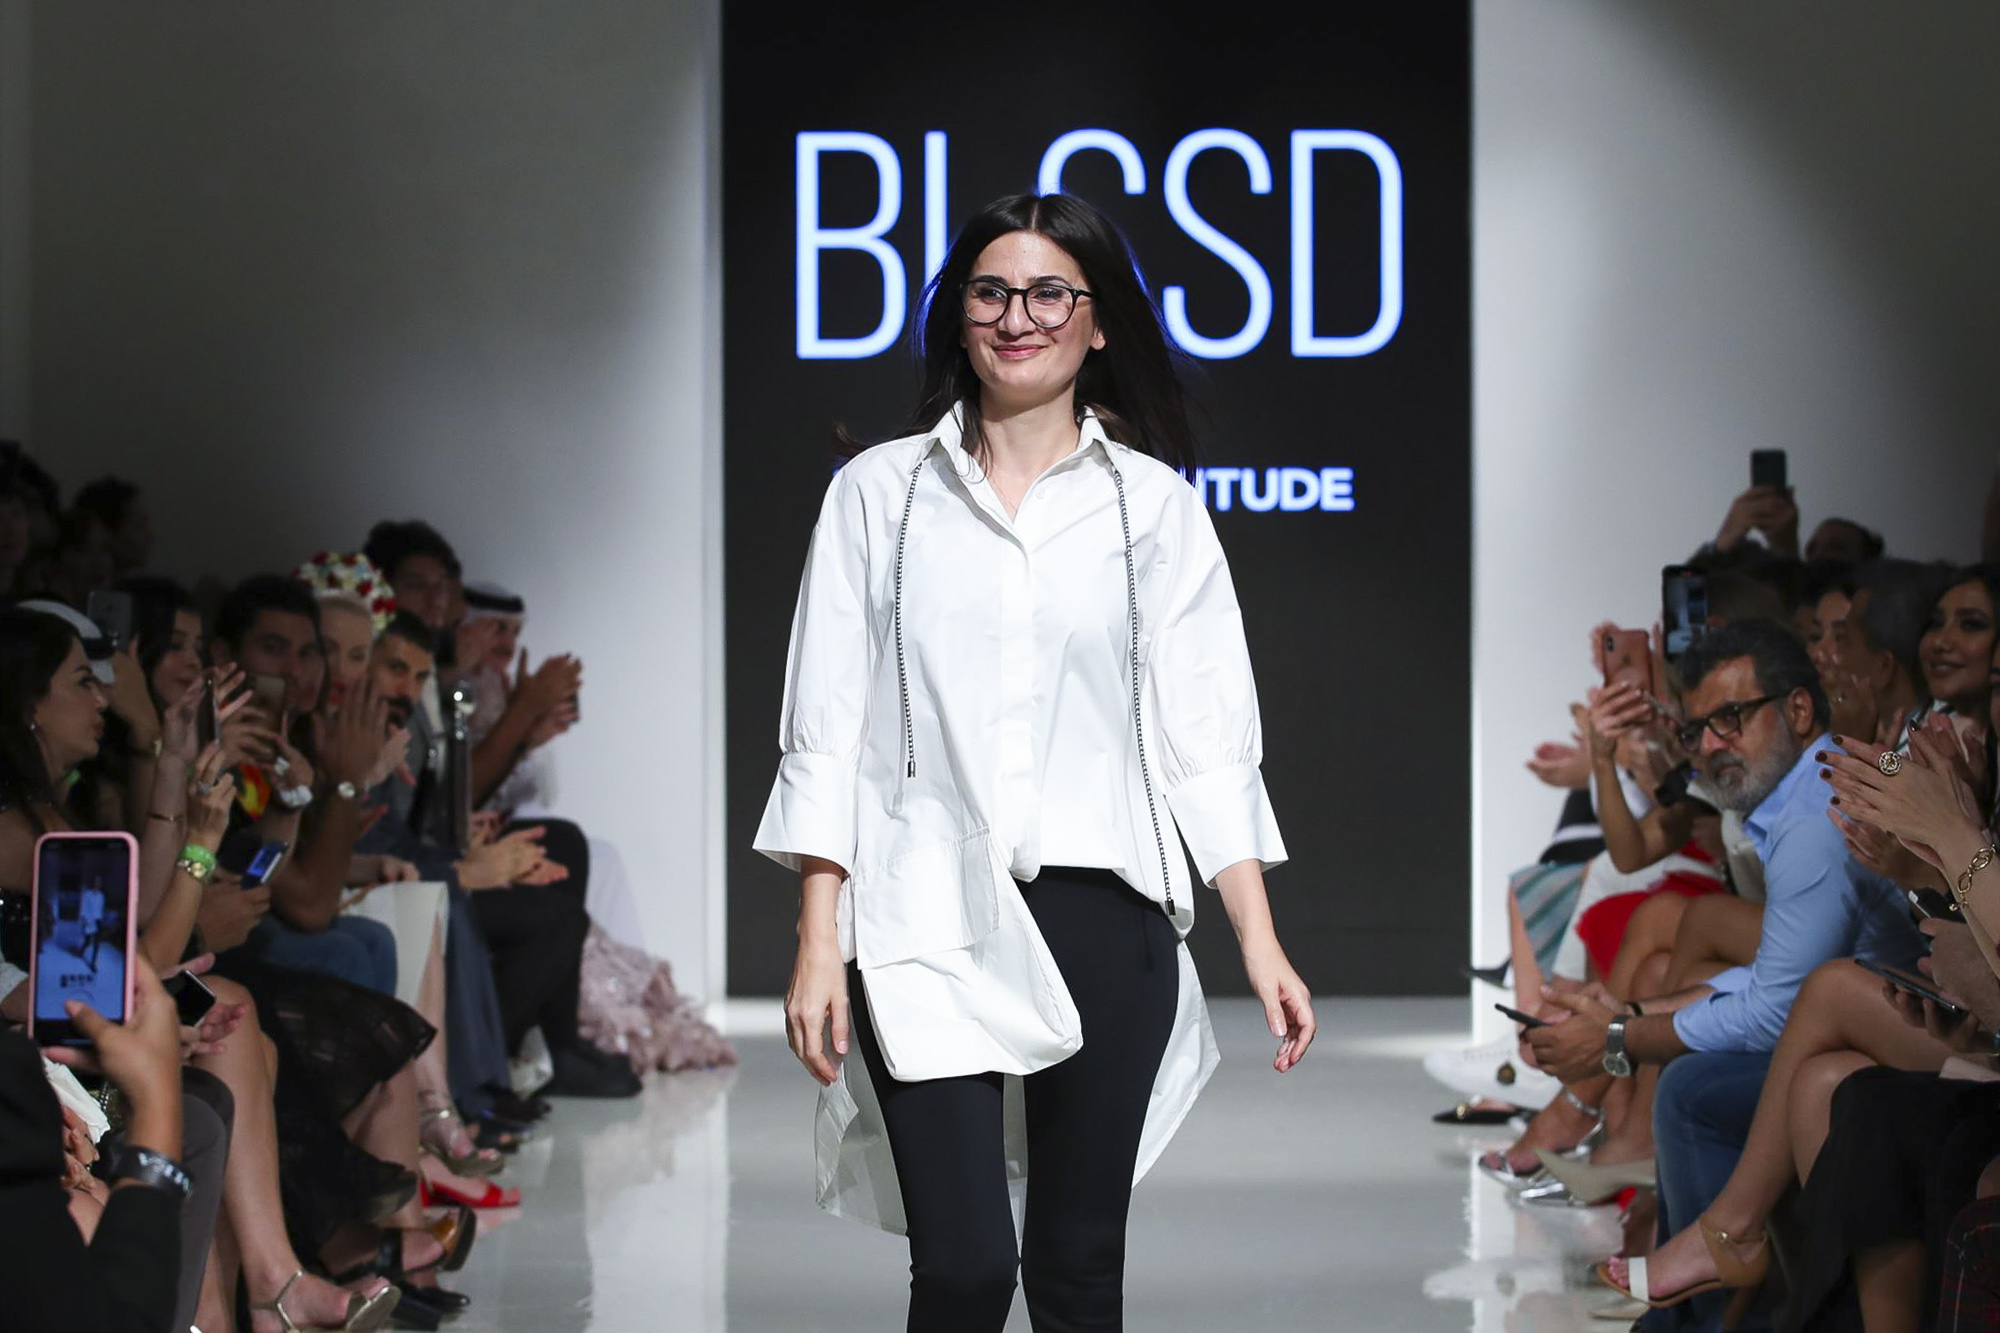 Blssd fashion show, Arab Fashion Week collection Spring Summer 2020 in Dubai